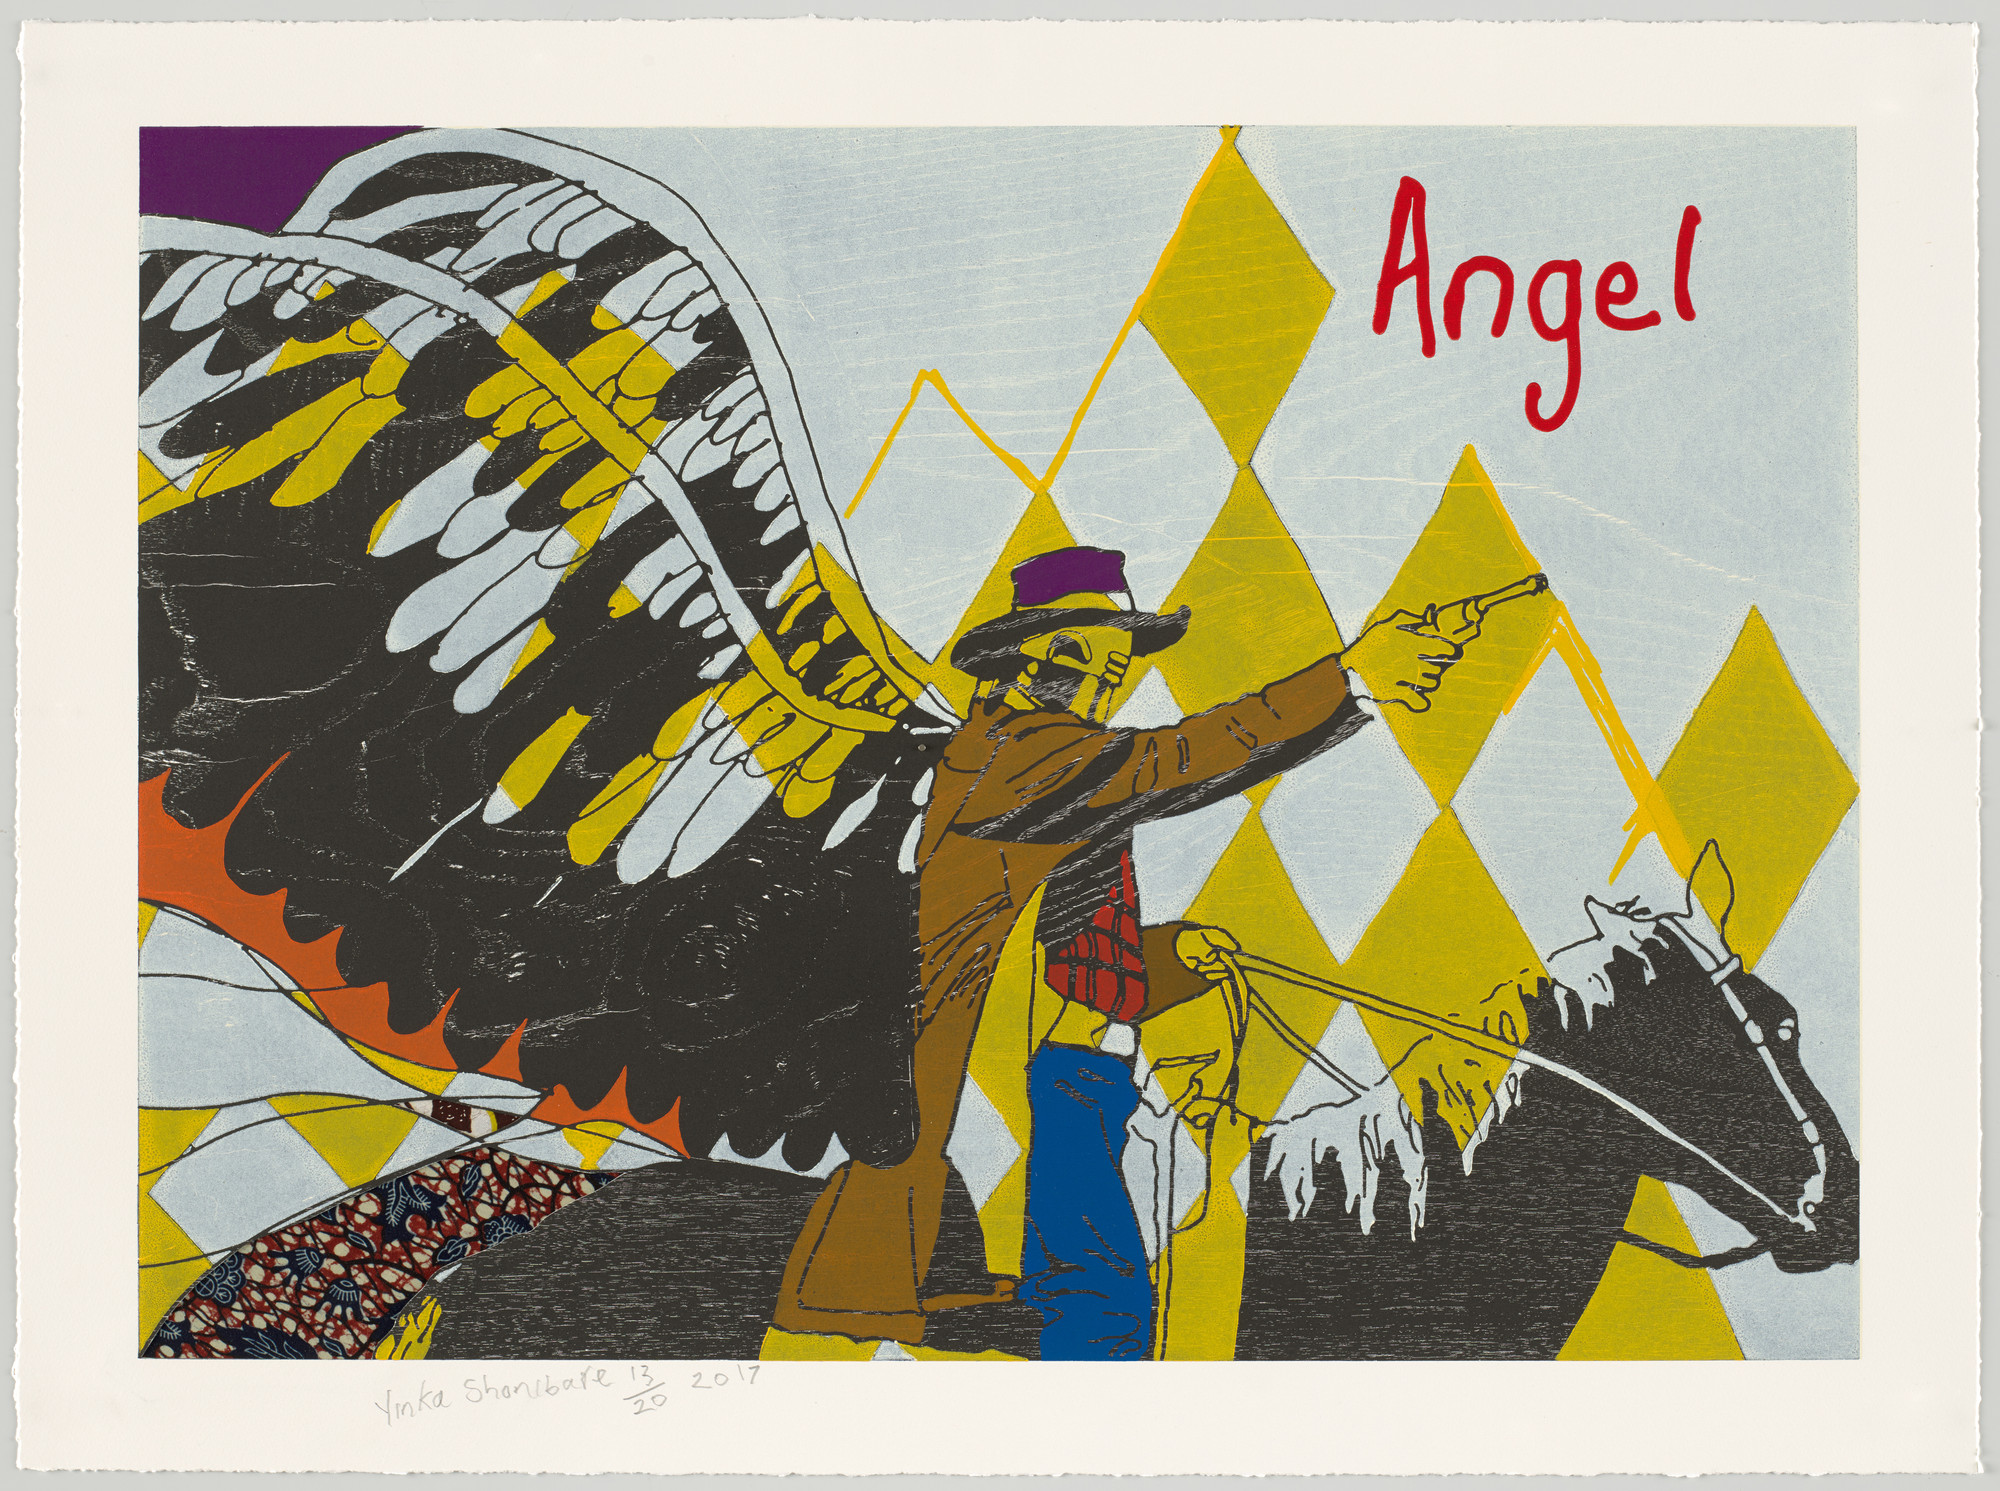 Yinka Shonibare. Cowboy Angels V from Cowboy Angels. 2017